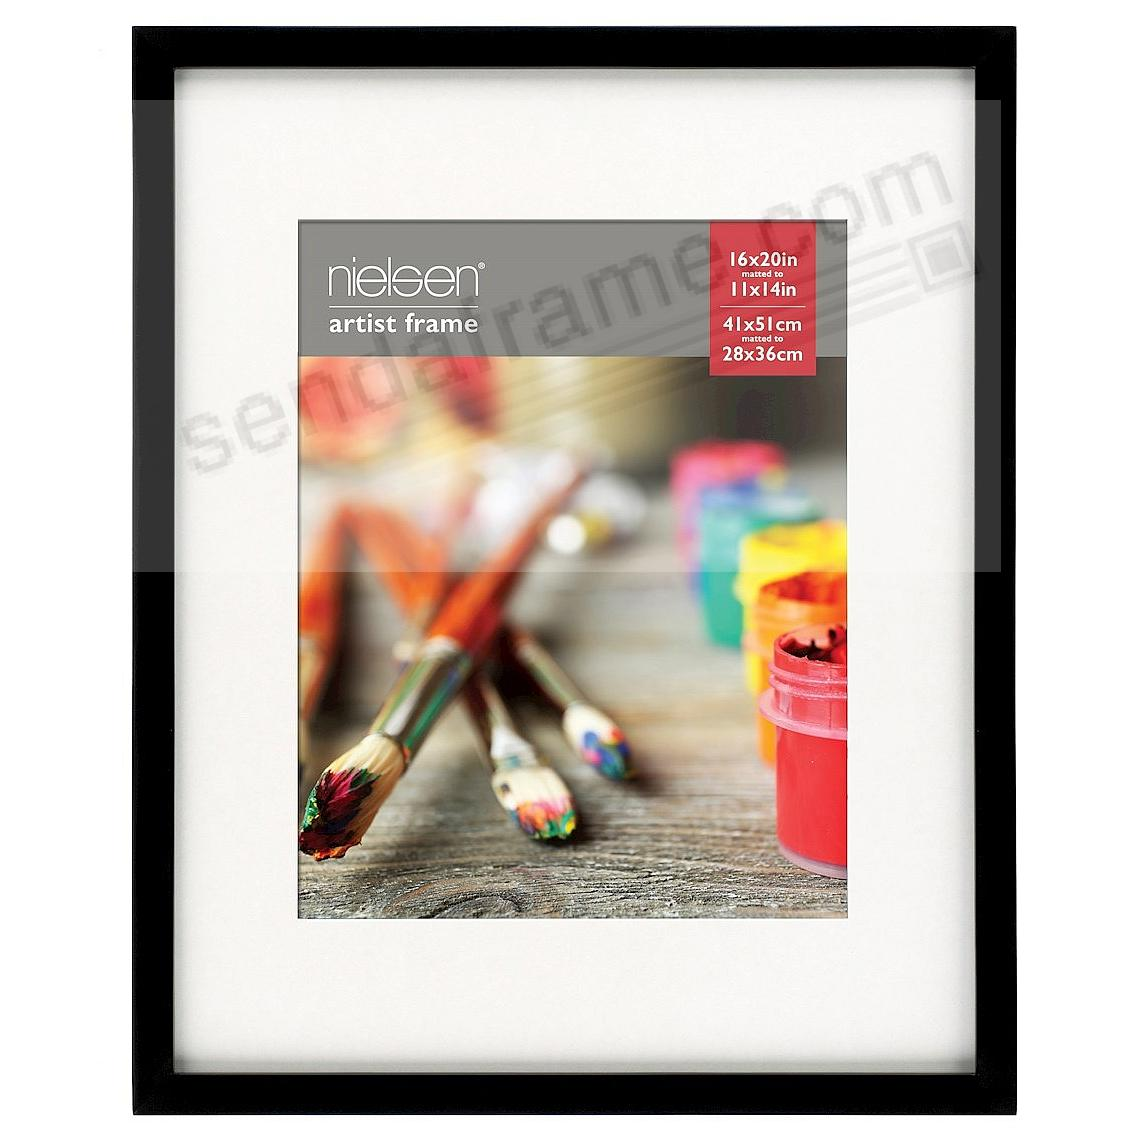 Matte-Black GALLERY-CANVAS DEPTH matted wood frame 11x14/16x20 by Nielsen-Bainbridge®